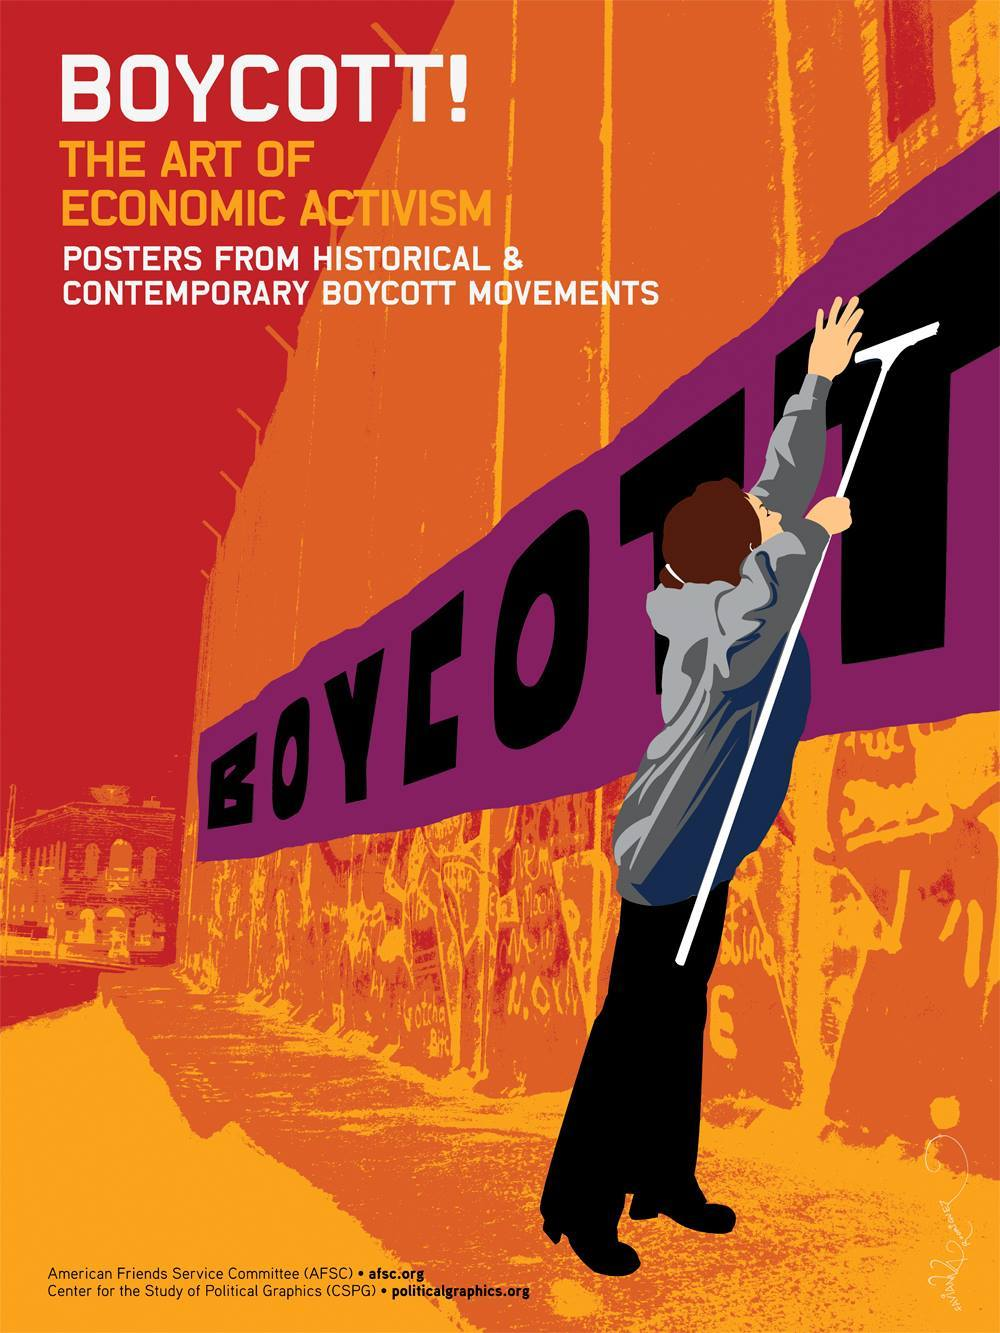 """Boycott! The Art of Economic Activism""  is a traveling poster exhibition that highlights historical boycott movements from the 1950s to the present.  The exhibit, created by AFSC and the Center for the Study of Political Graphics, features 59 posters from more than 20 boycotts, including the Montgomery Bus Boycott, United Farm Workers' grape and lettuce boycott, divestment from South Africa to protest Apartheid, boycotts of corporations using sweatshops, the Palestinian call for Boycott, Divest and Sanctions, and many others  Exhibit - March 8 - March 27  Sun. March 8th: 3-7pm- Boycott Exhibit opening reception with presentation by the AFSC.   Tues. March 10th at 7pm: Keynote Presentation by three young Palestinian woman from Gaza and the West Bank.   Thurs. March 26th at 7pm: Keynote presentation by Rabbi Brant Rosen, AFSC Midwest Regional Director  Free, All Ages"